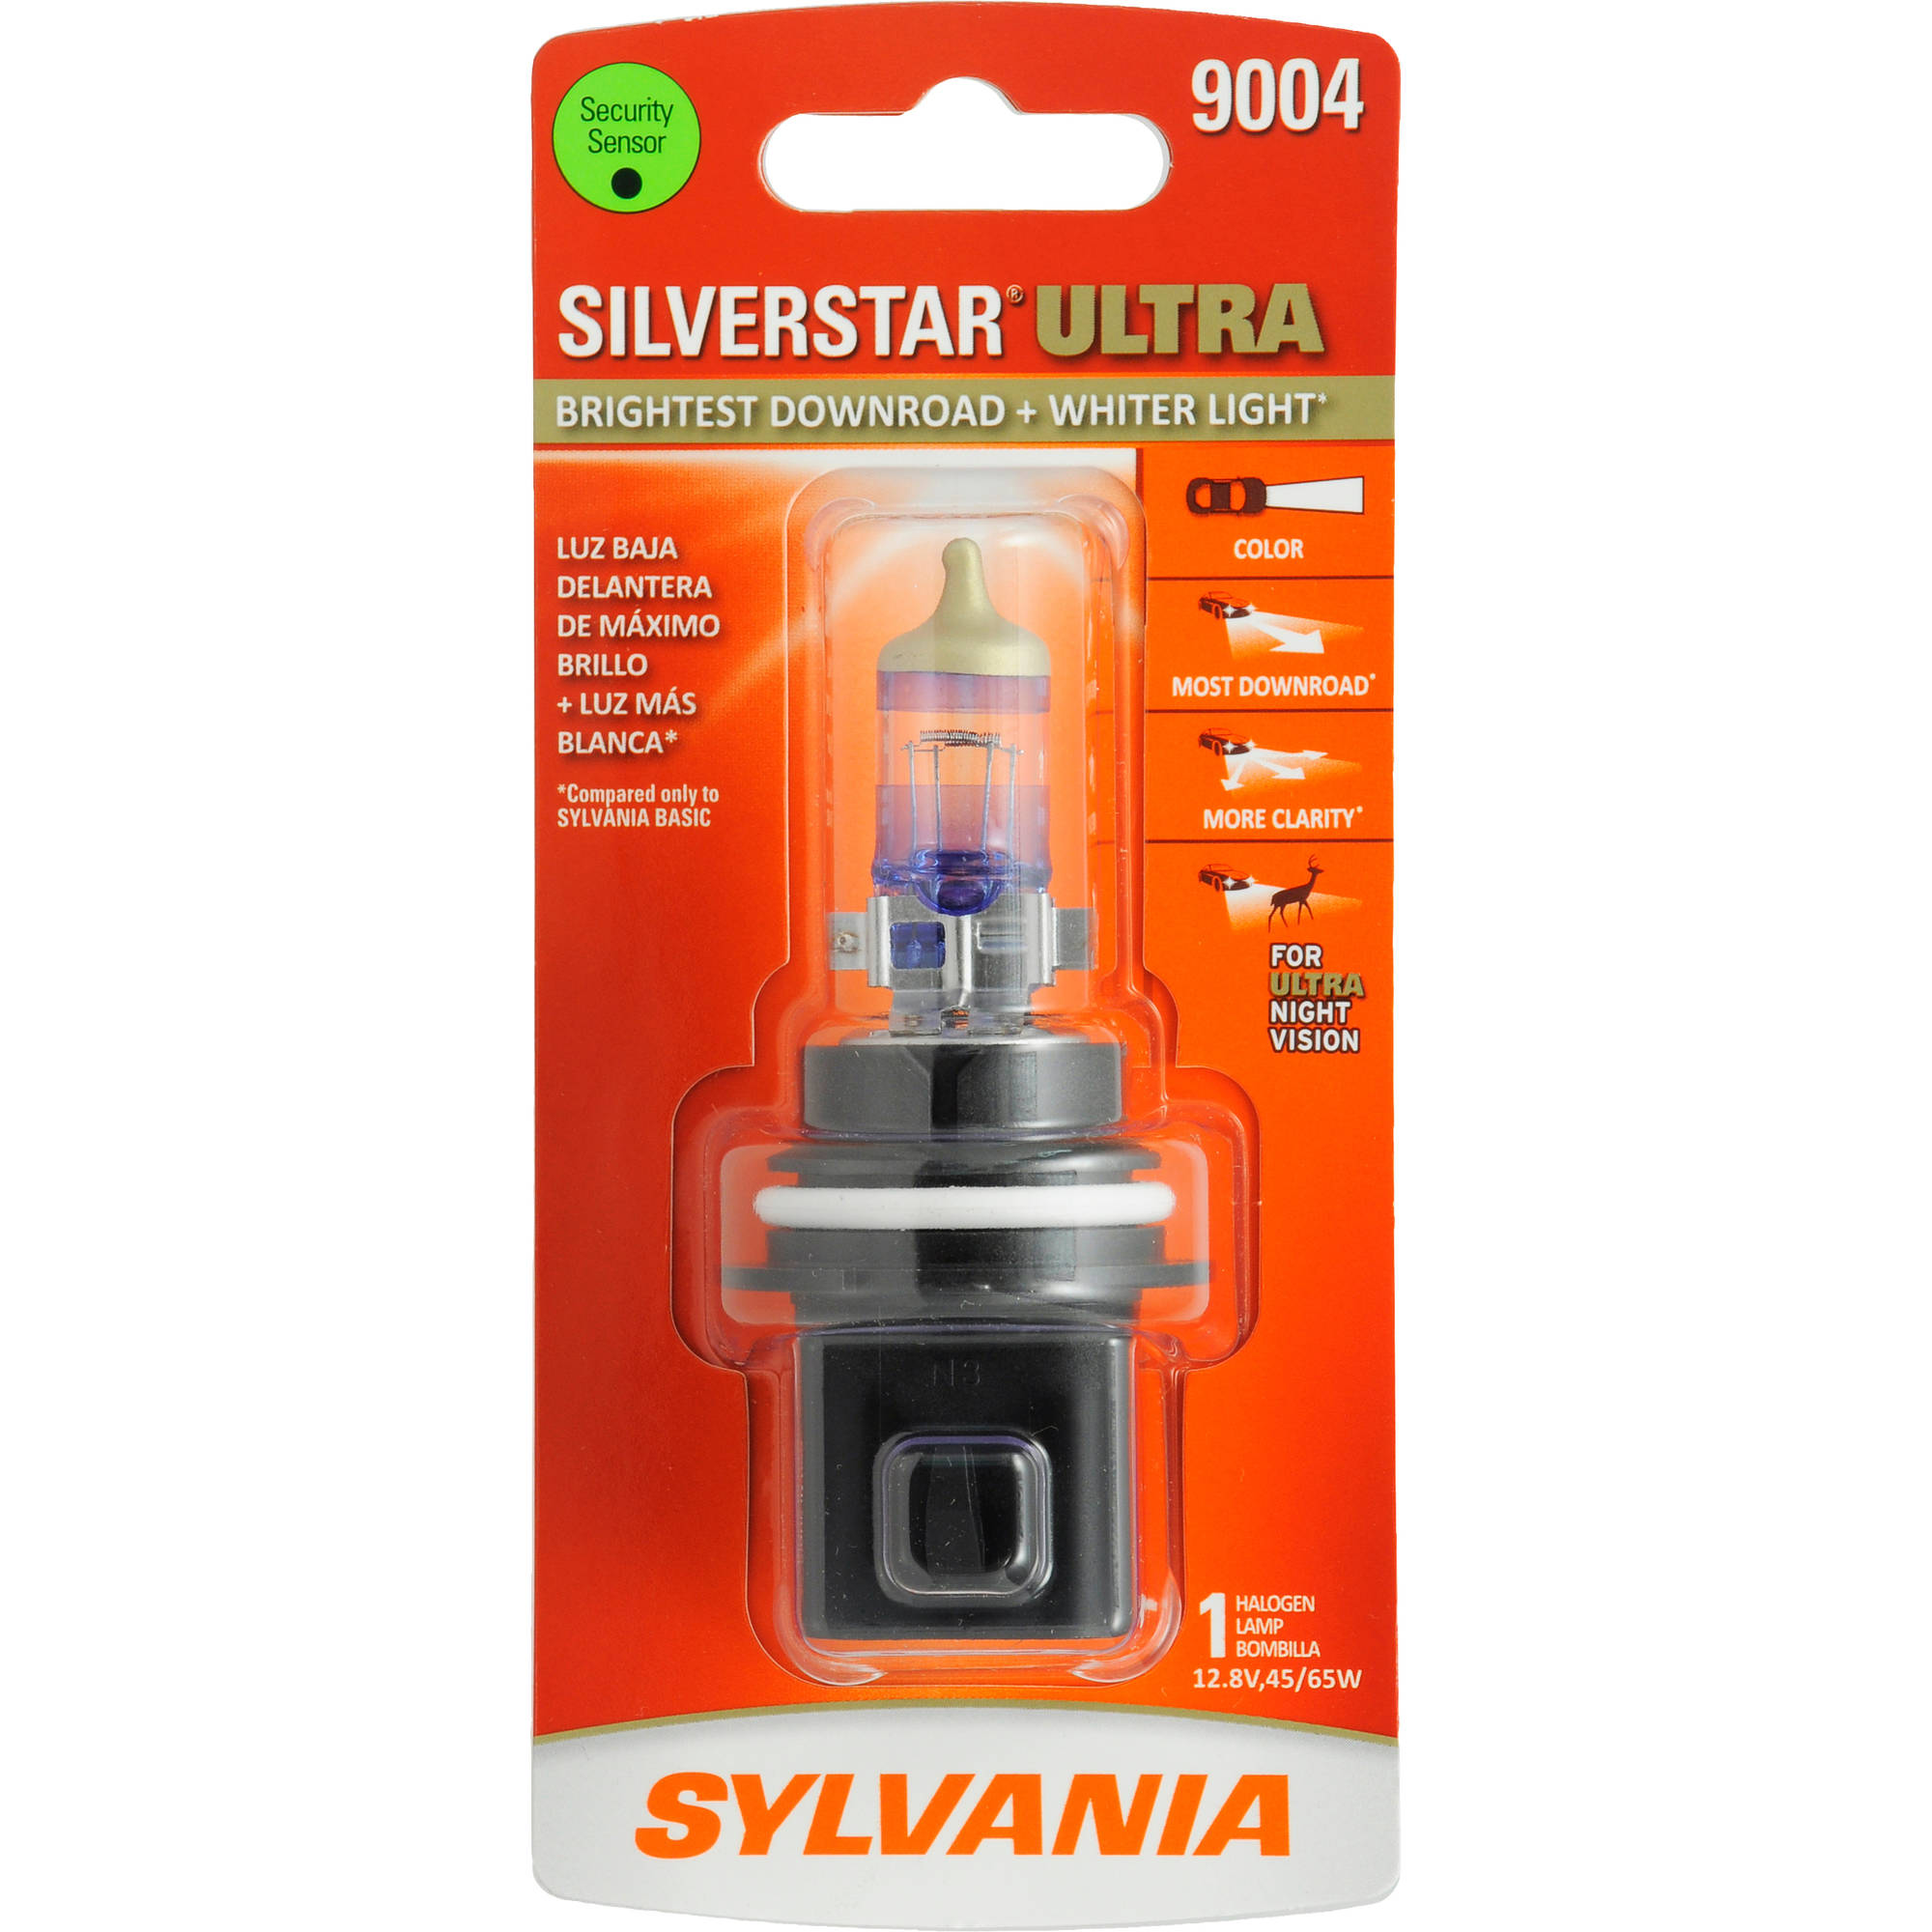 Sylvania 9004 SilverStar ULTRA Headlight, Contains 1 Bulb